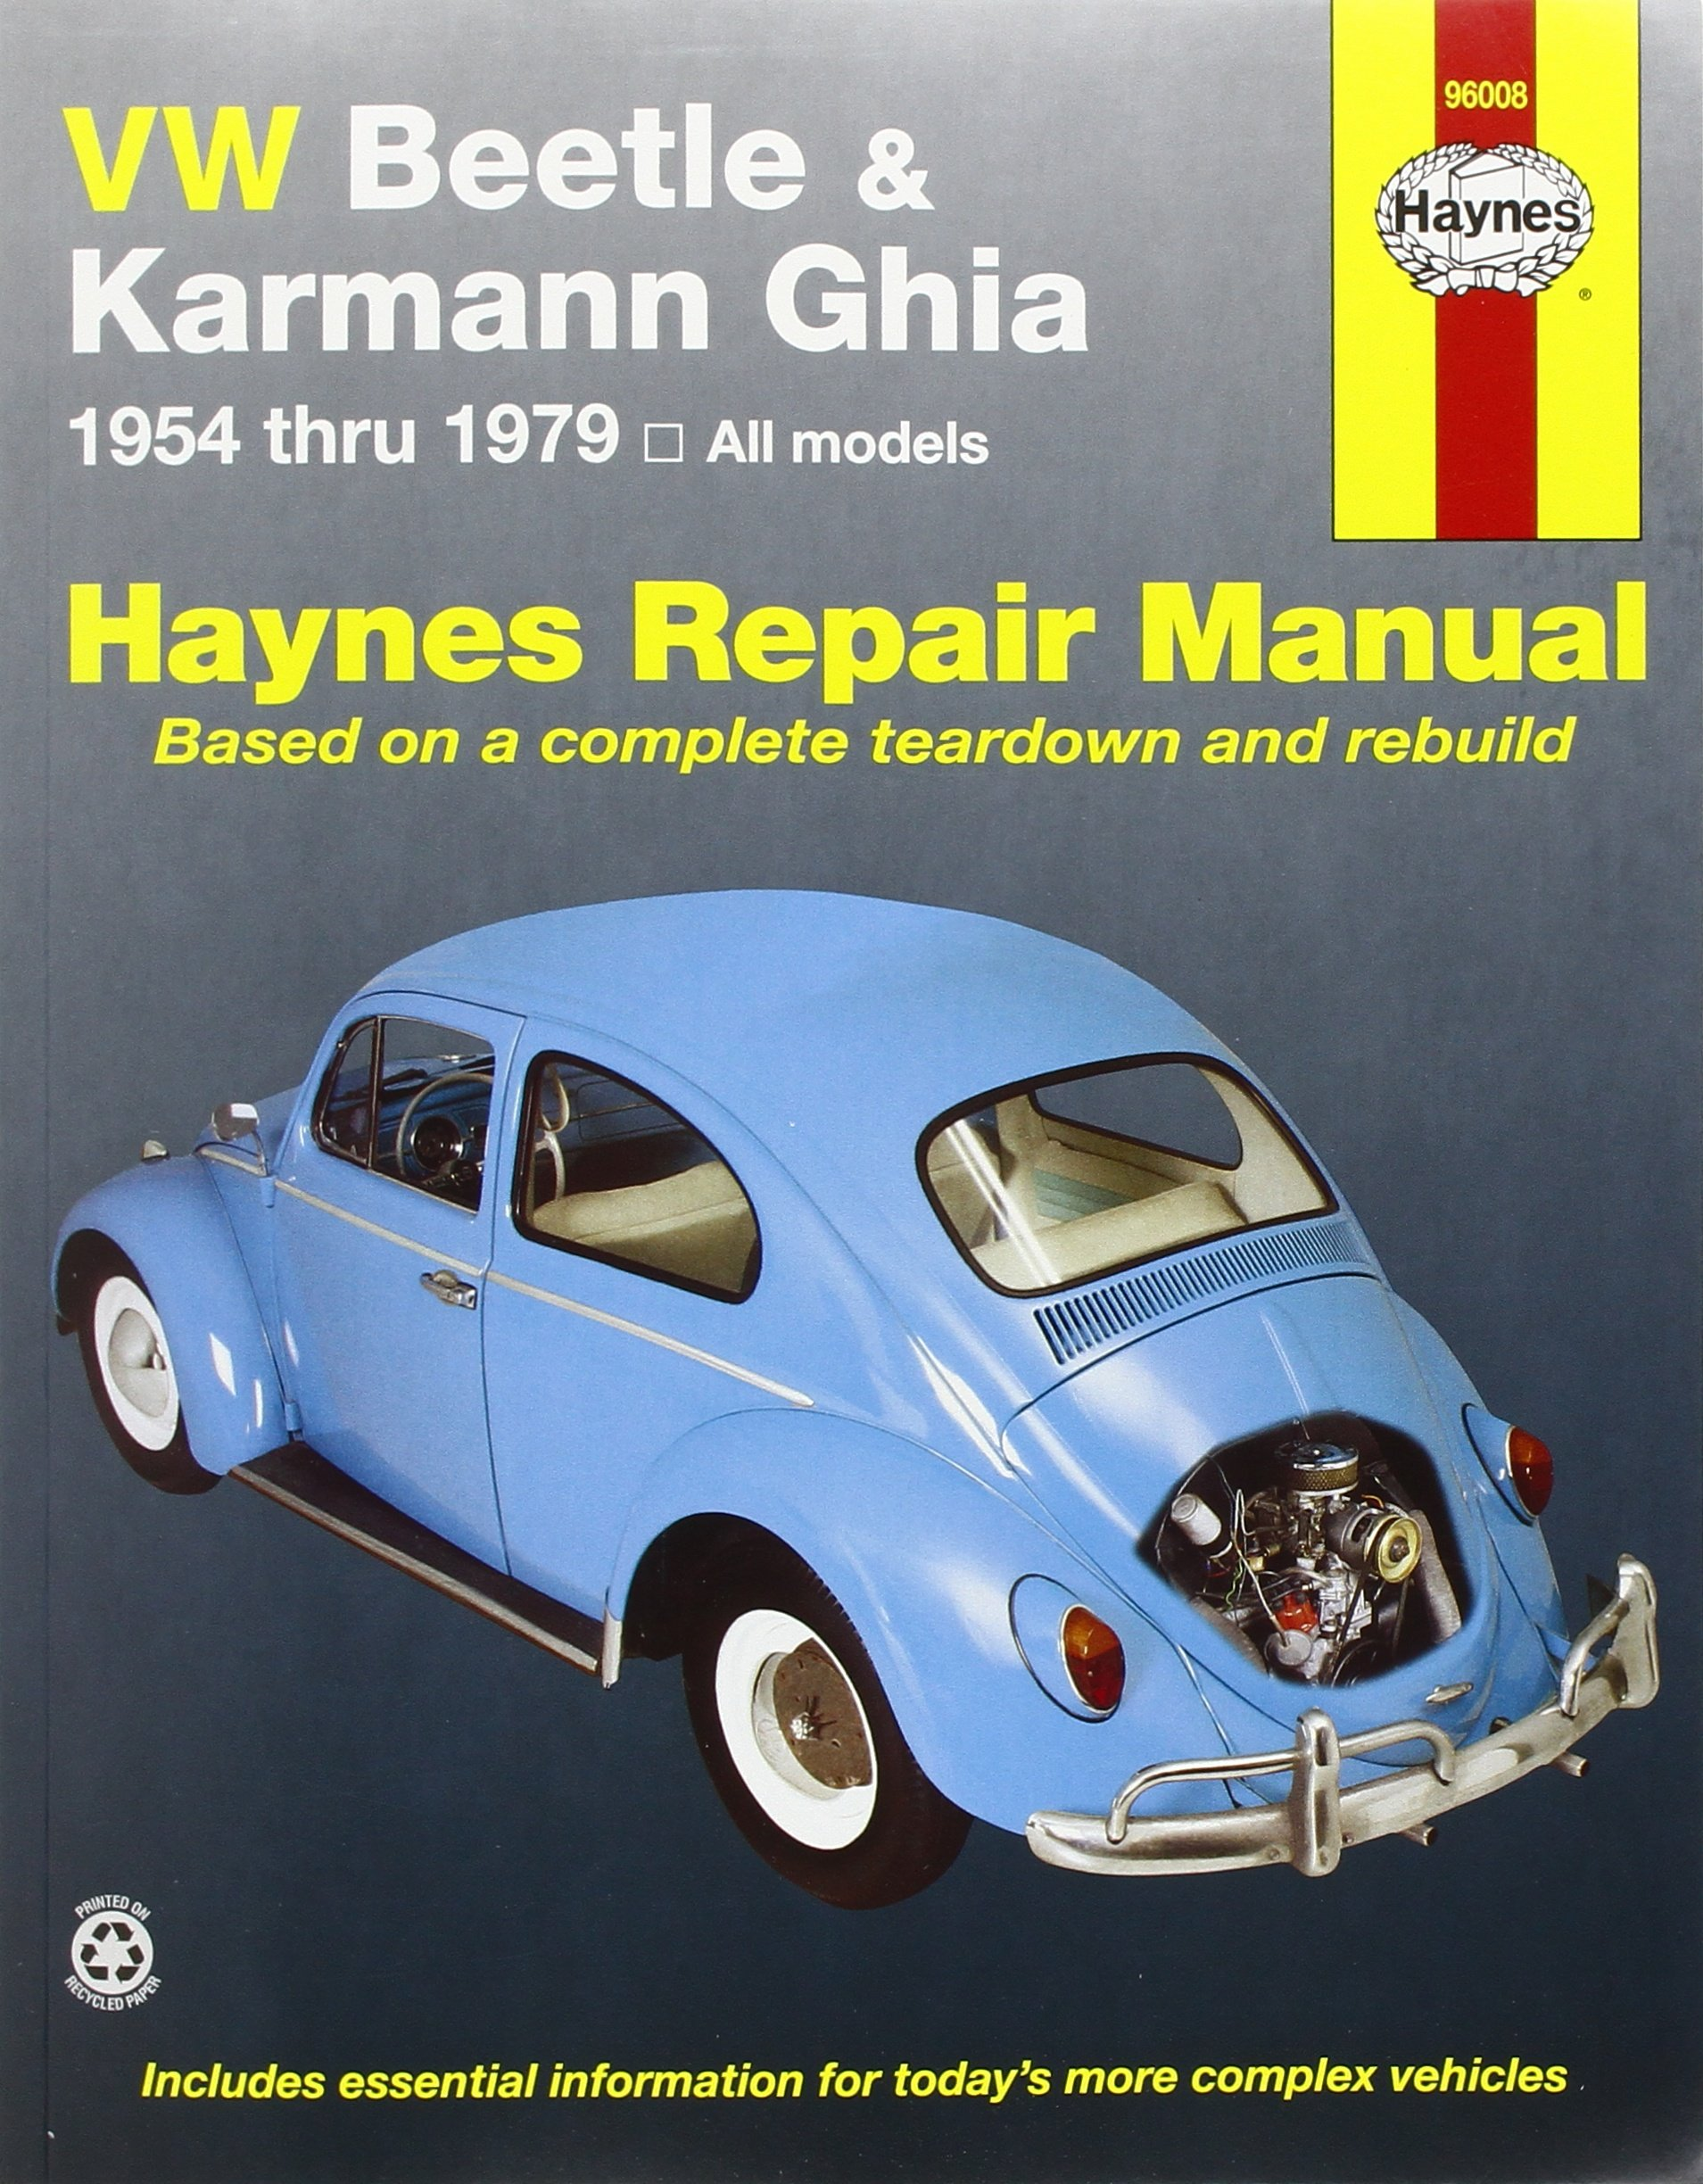 1968 Vw Beetle Engine Parts Diagram Wiring Library Ugl 1200 Maglock Karmann Ghia 1954 Through 1979 All Models Haynes Repair Manual